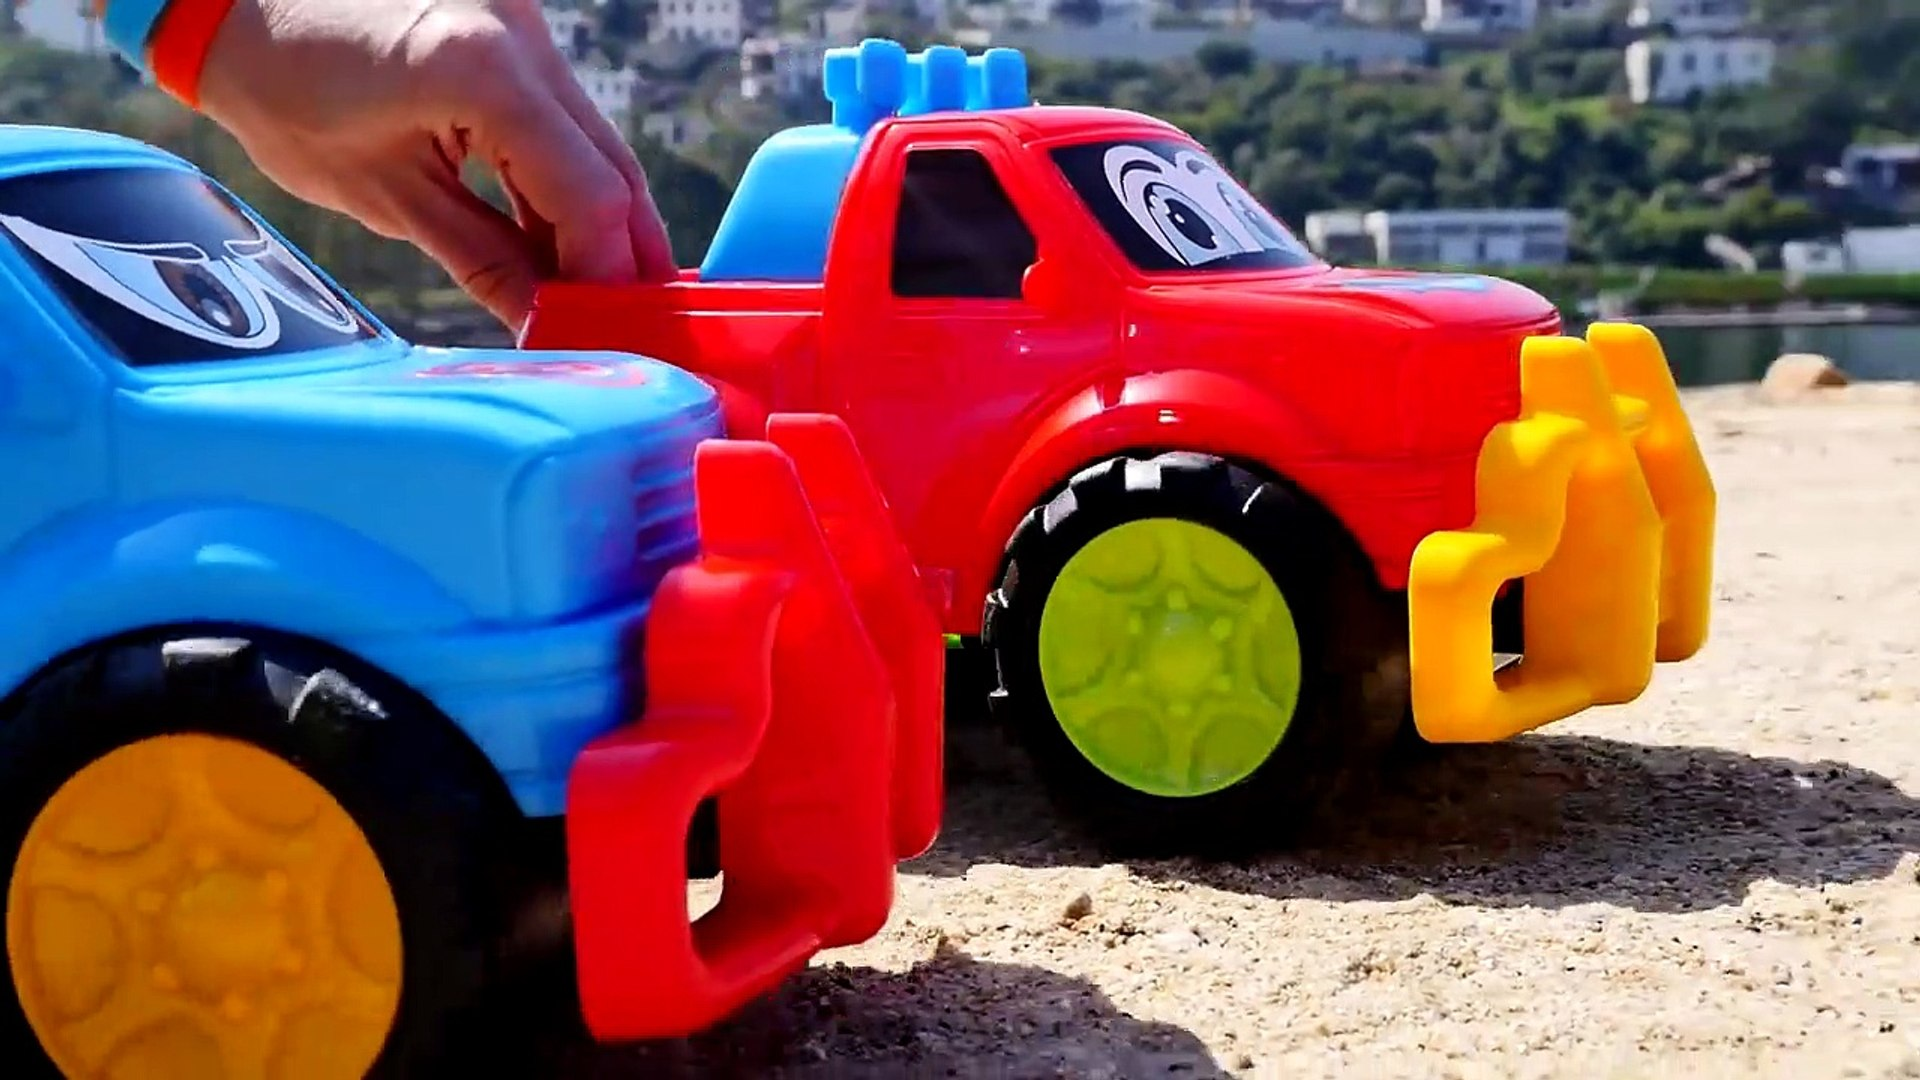 BEACH JEEPS! - Toy Trucks Seaside Stories for Children - Toy Cars Videos for Kids - Toy Tr